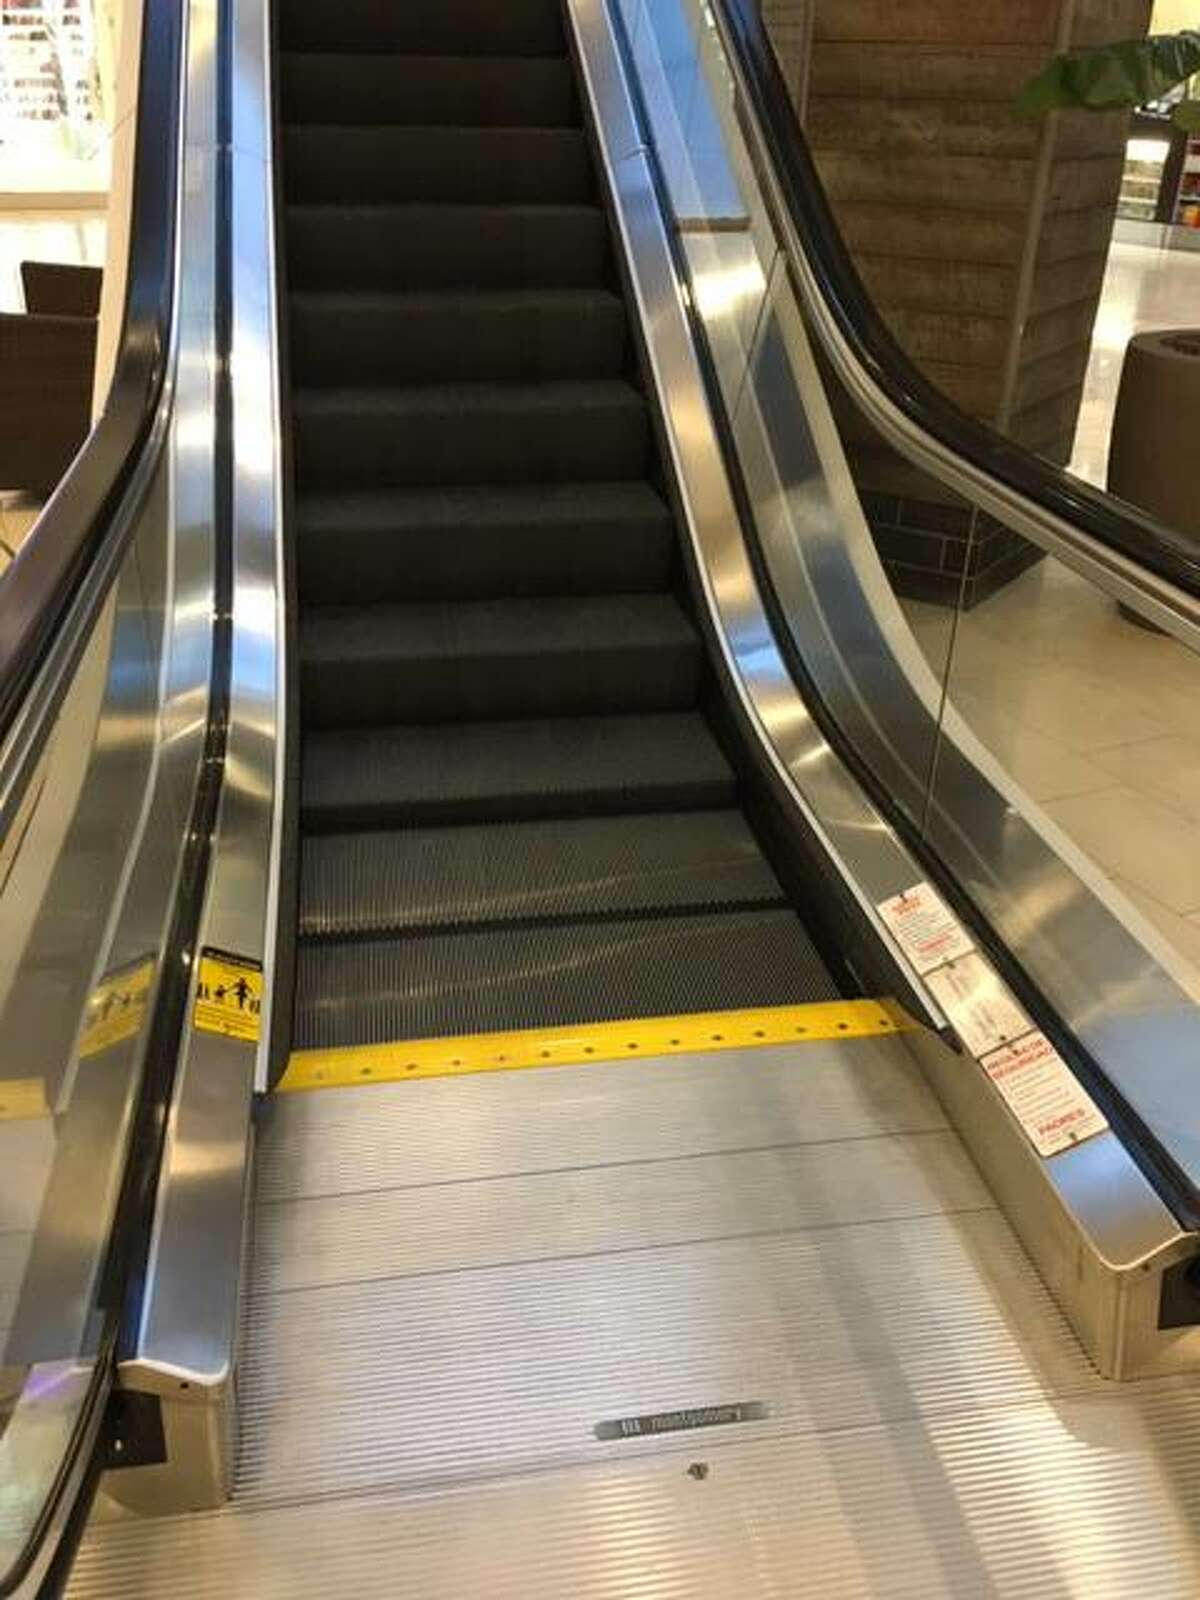 The escalator in the Westfield Trumbull mall where a toddler was injured in 2018. Her mother is suing the mall and the escalator company.